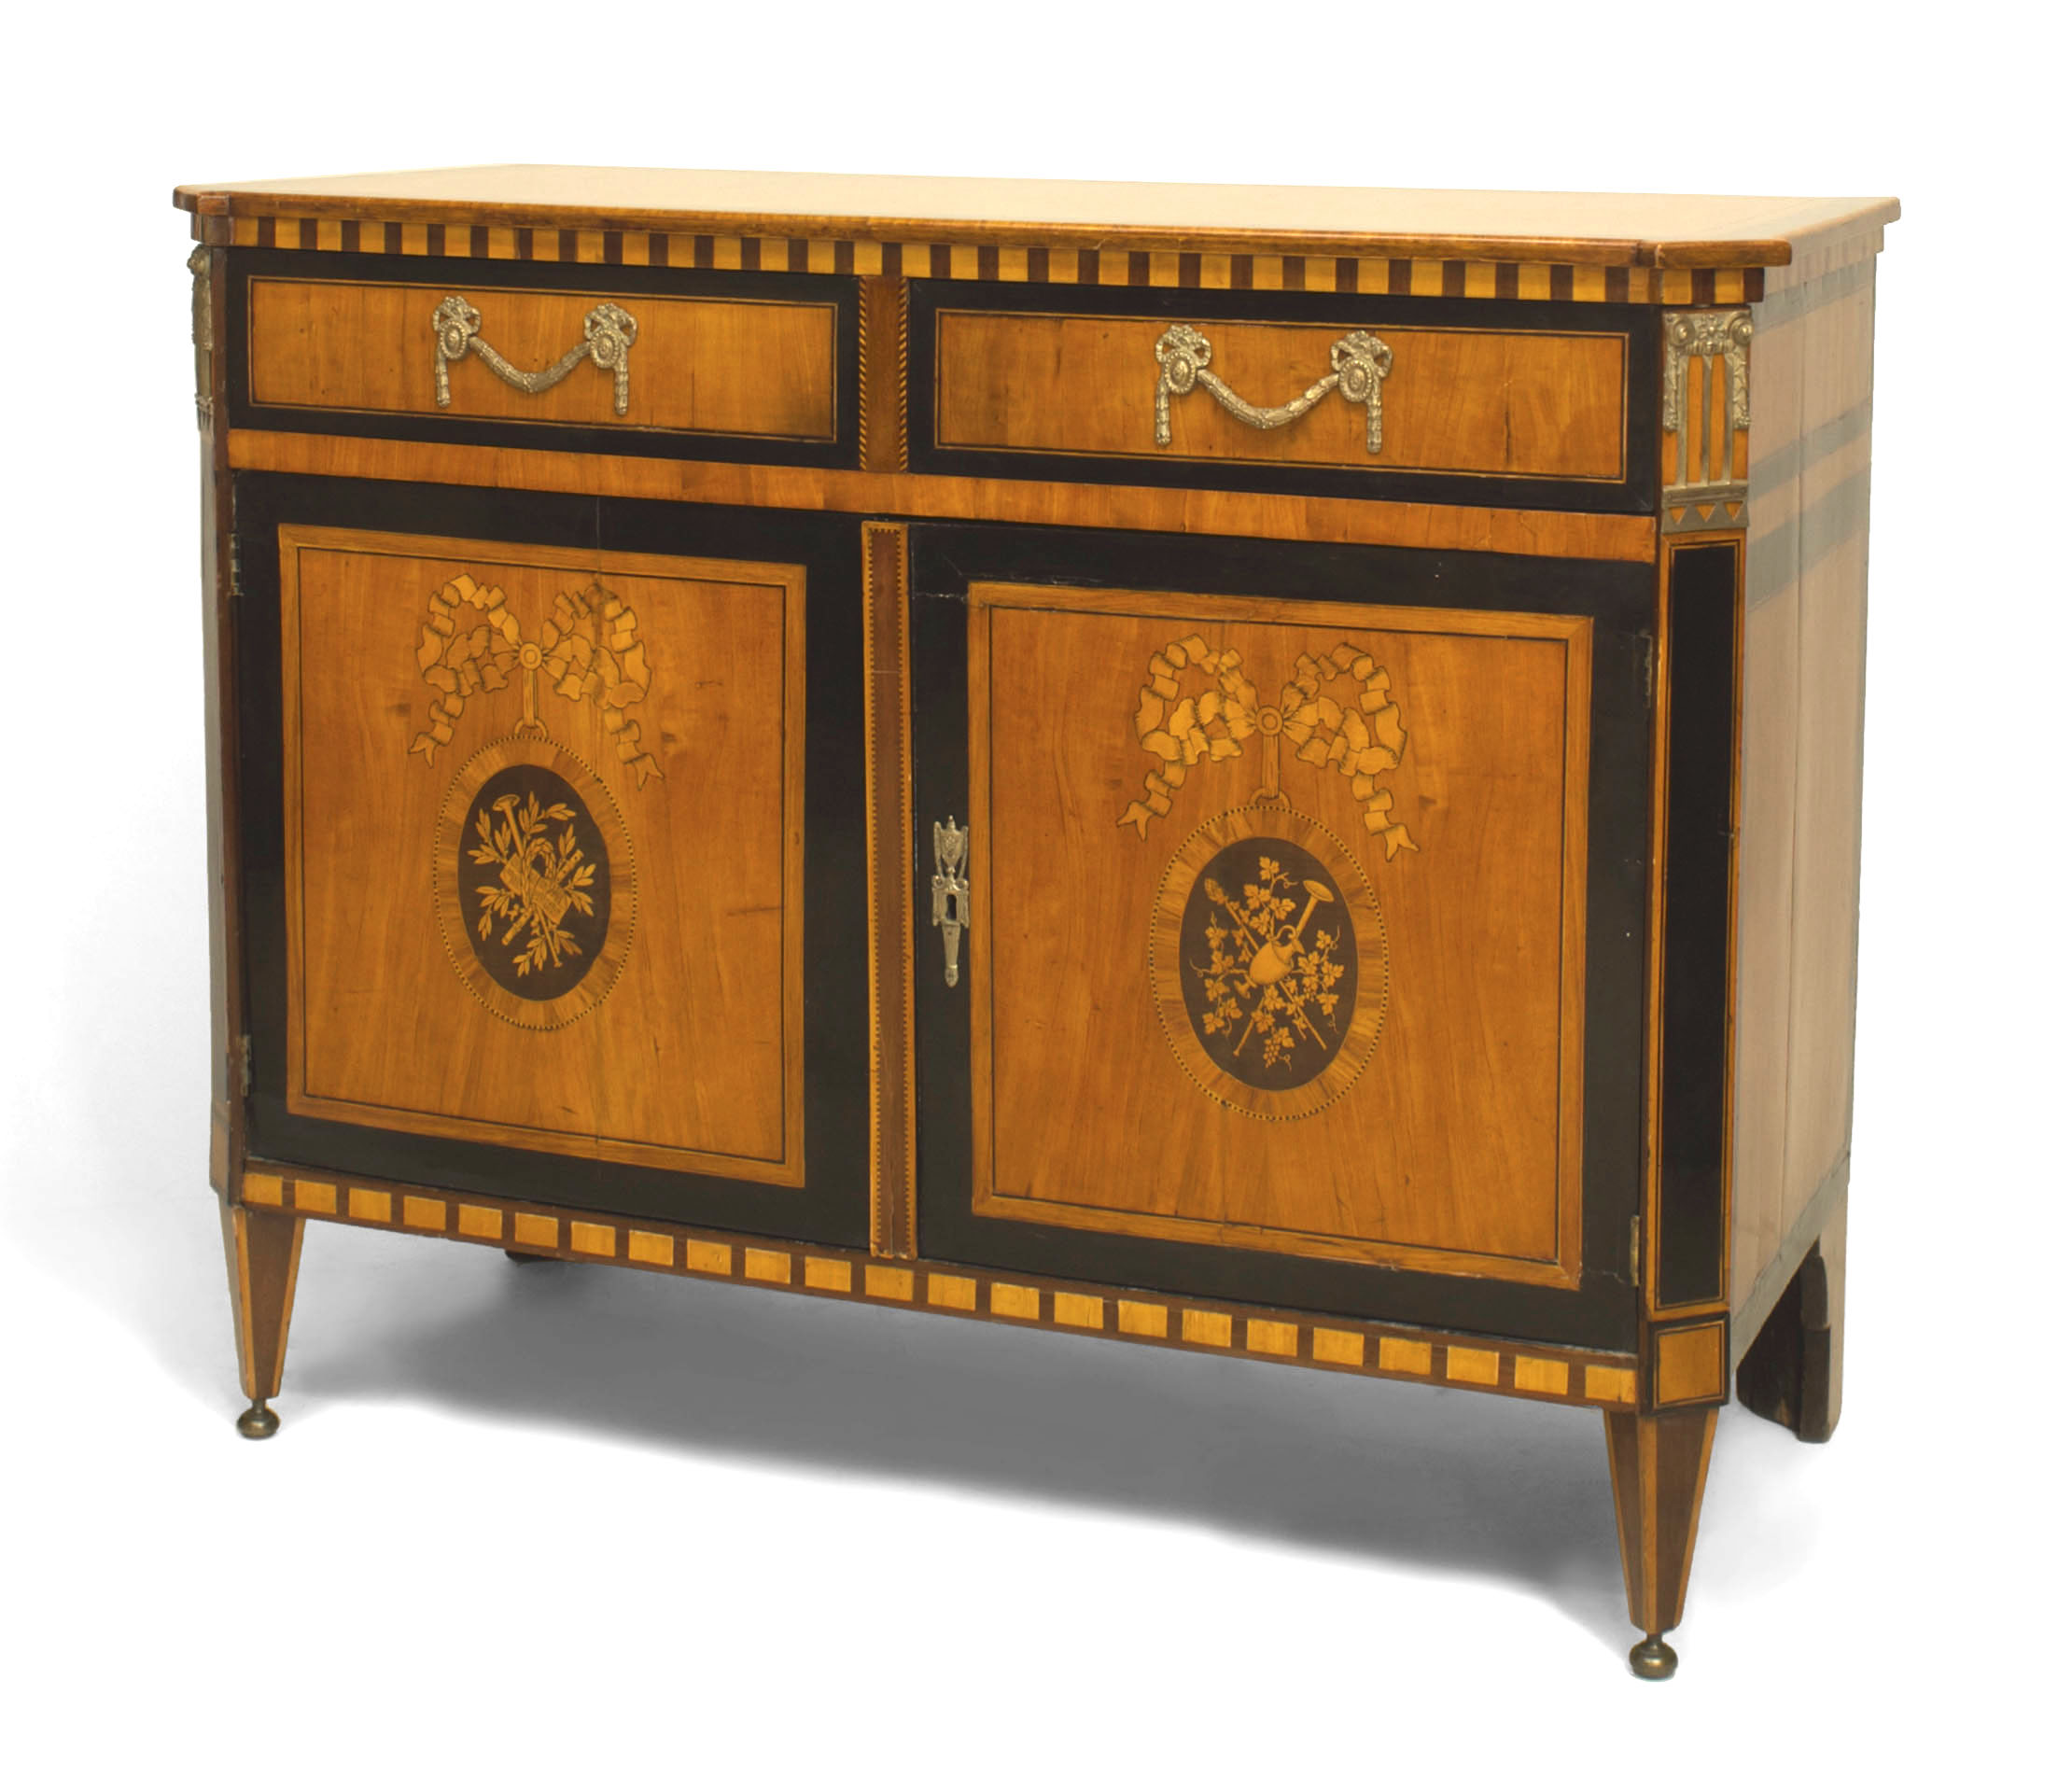 Continental Dutch Satinwood Commode Cabinet With 2 Drawers Above To Doors  With Floral Marquetry Panels (18th/19th Cent).